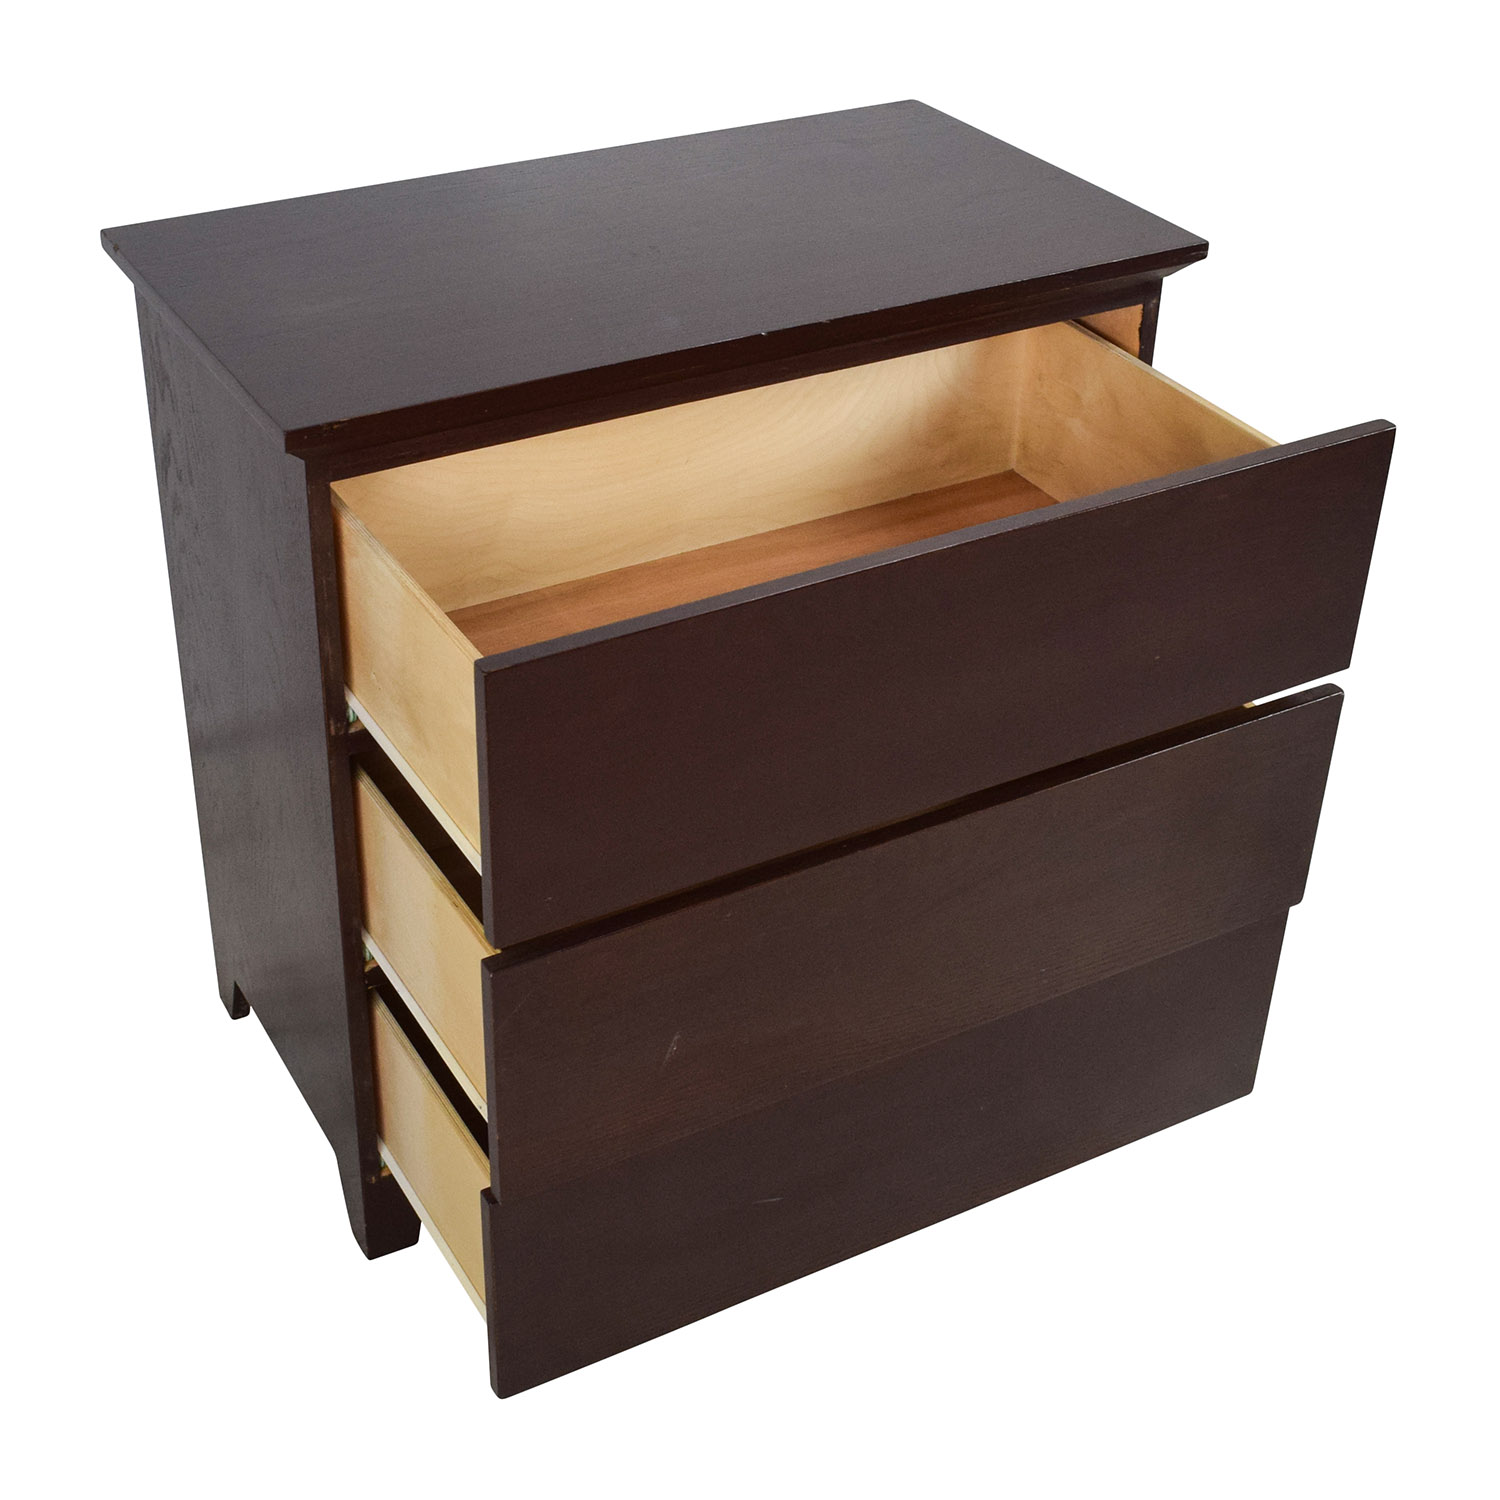 ... Gothic Cabinets Gothic Cabinets Compact Dresser Storage ...